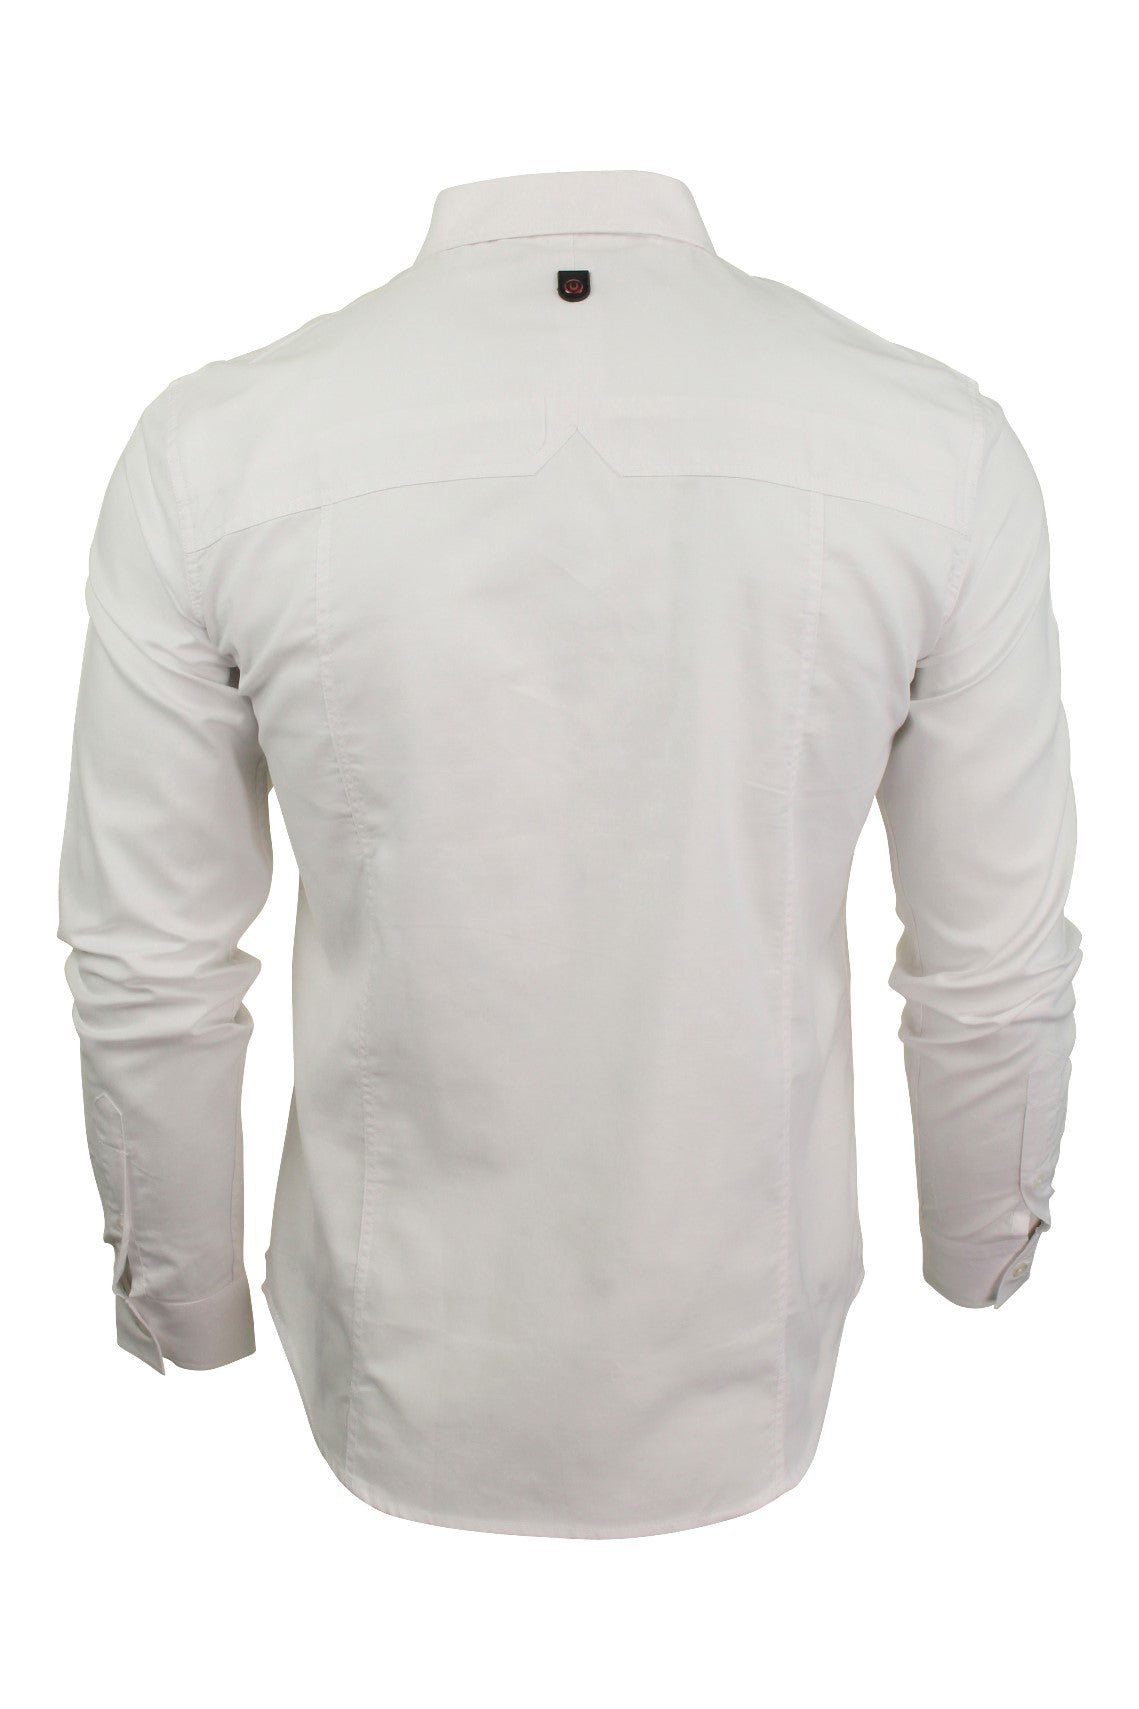 Mens Long Sleeved Shirt by Duck and Cover 'Birch'_03_Dc2G111535_White